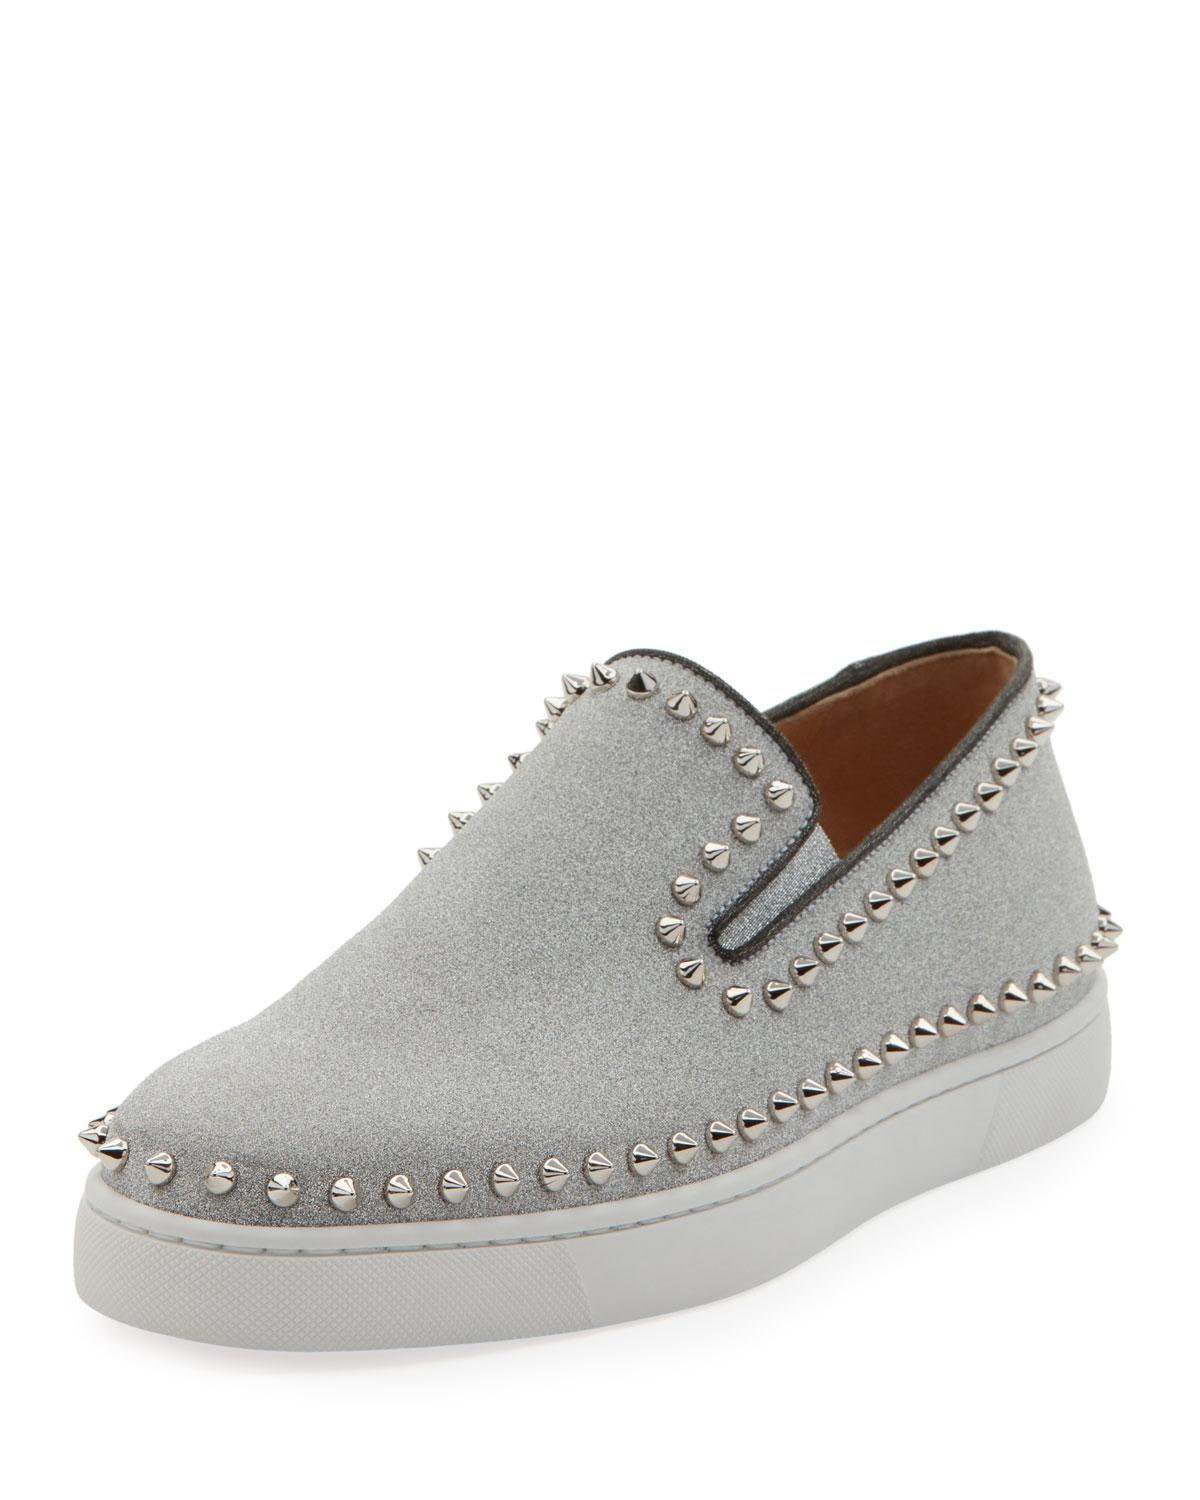 2e7193403a63 Christian Louboutin Men s Pik Boat Leather Slip-On Sneakers In ...